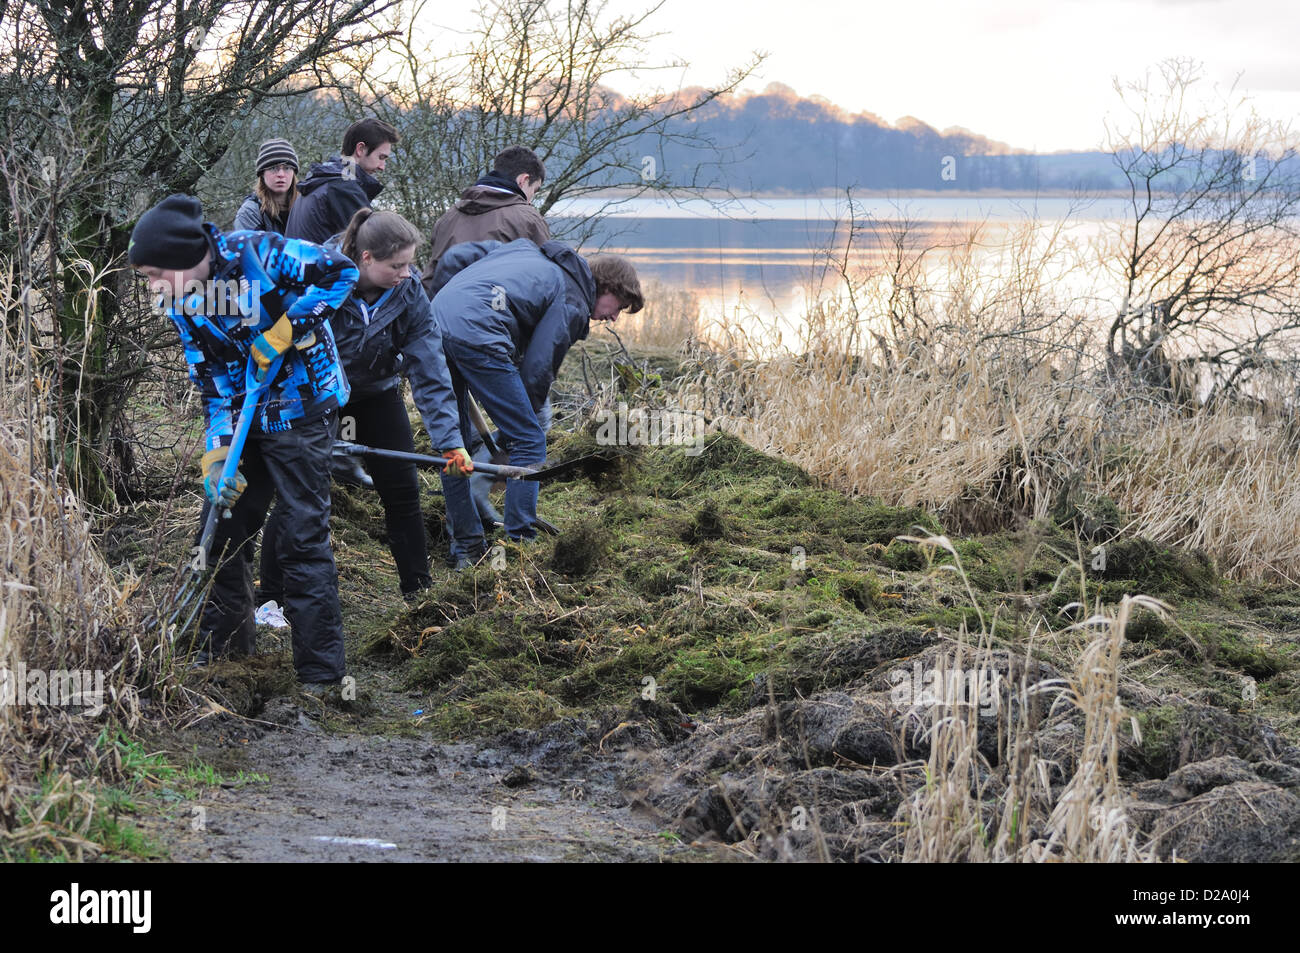 Teenagers clearing a path after floods at Muirshiel country park at Castle Semple, Lochwinnoch, Scotland - Stock Image